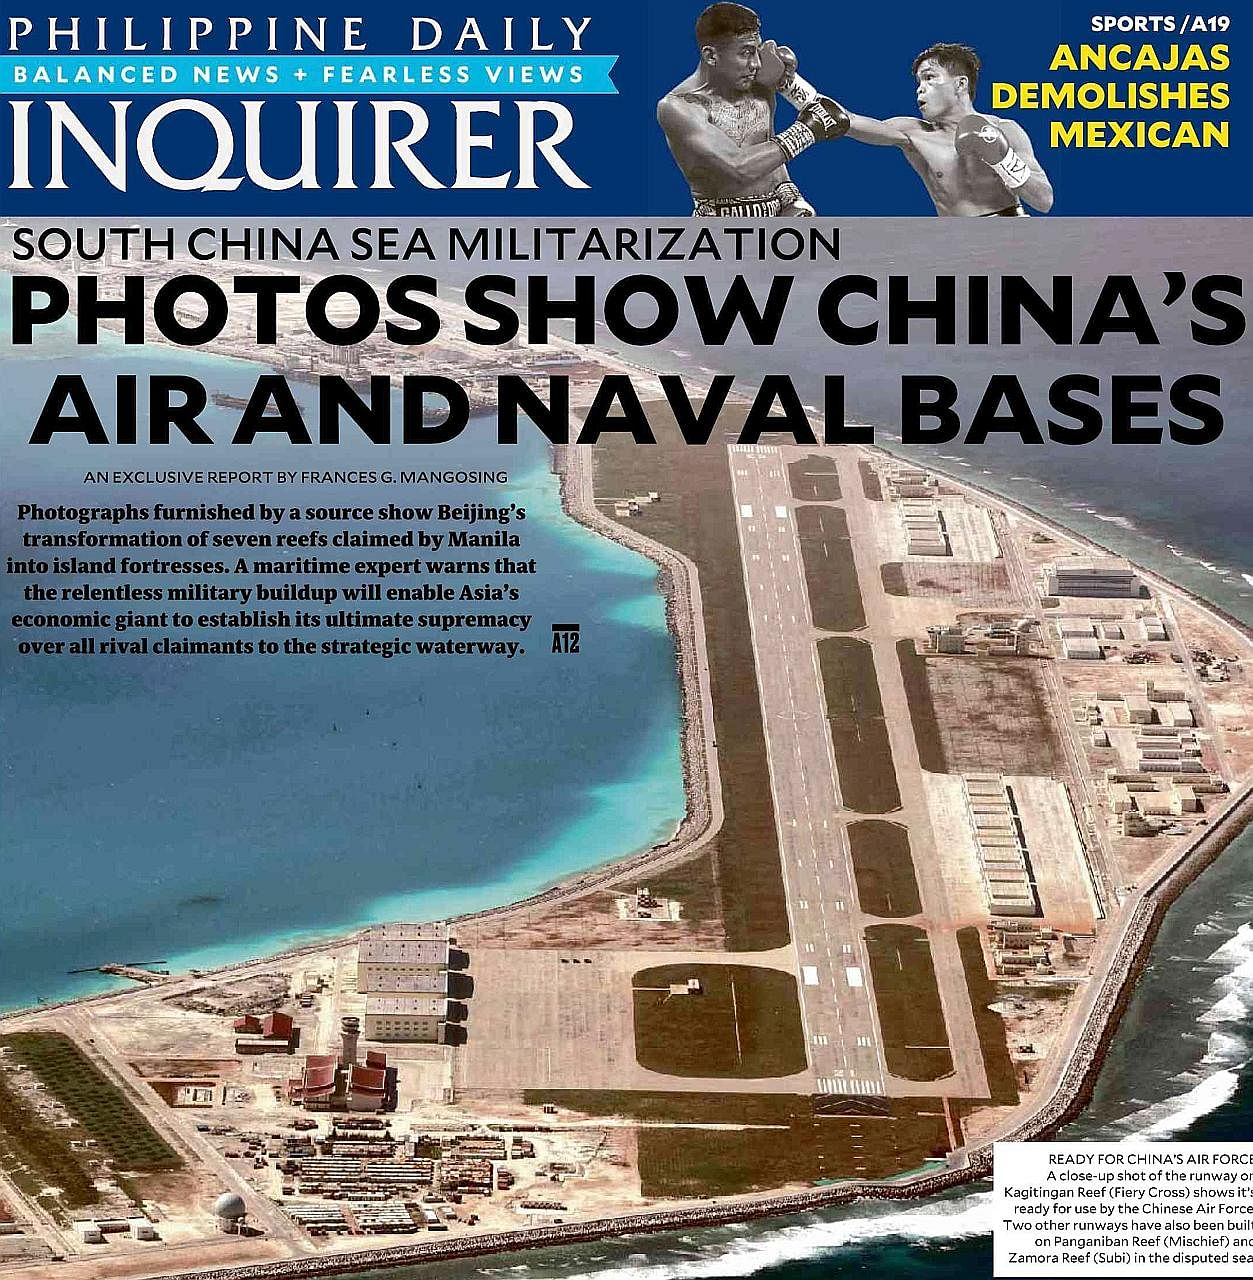 The Philippine Daily Inquirer report published yesterday shows the building of facilities on seven islands that China claims in the South China Sea as nearly done.